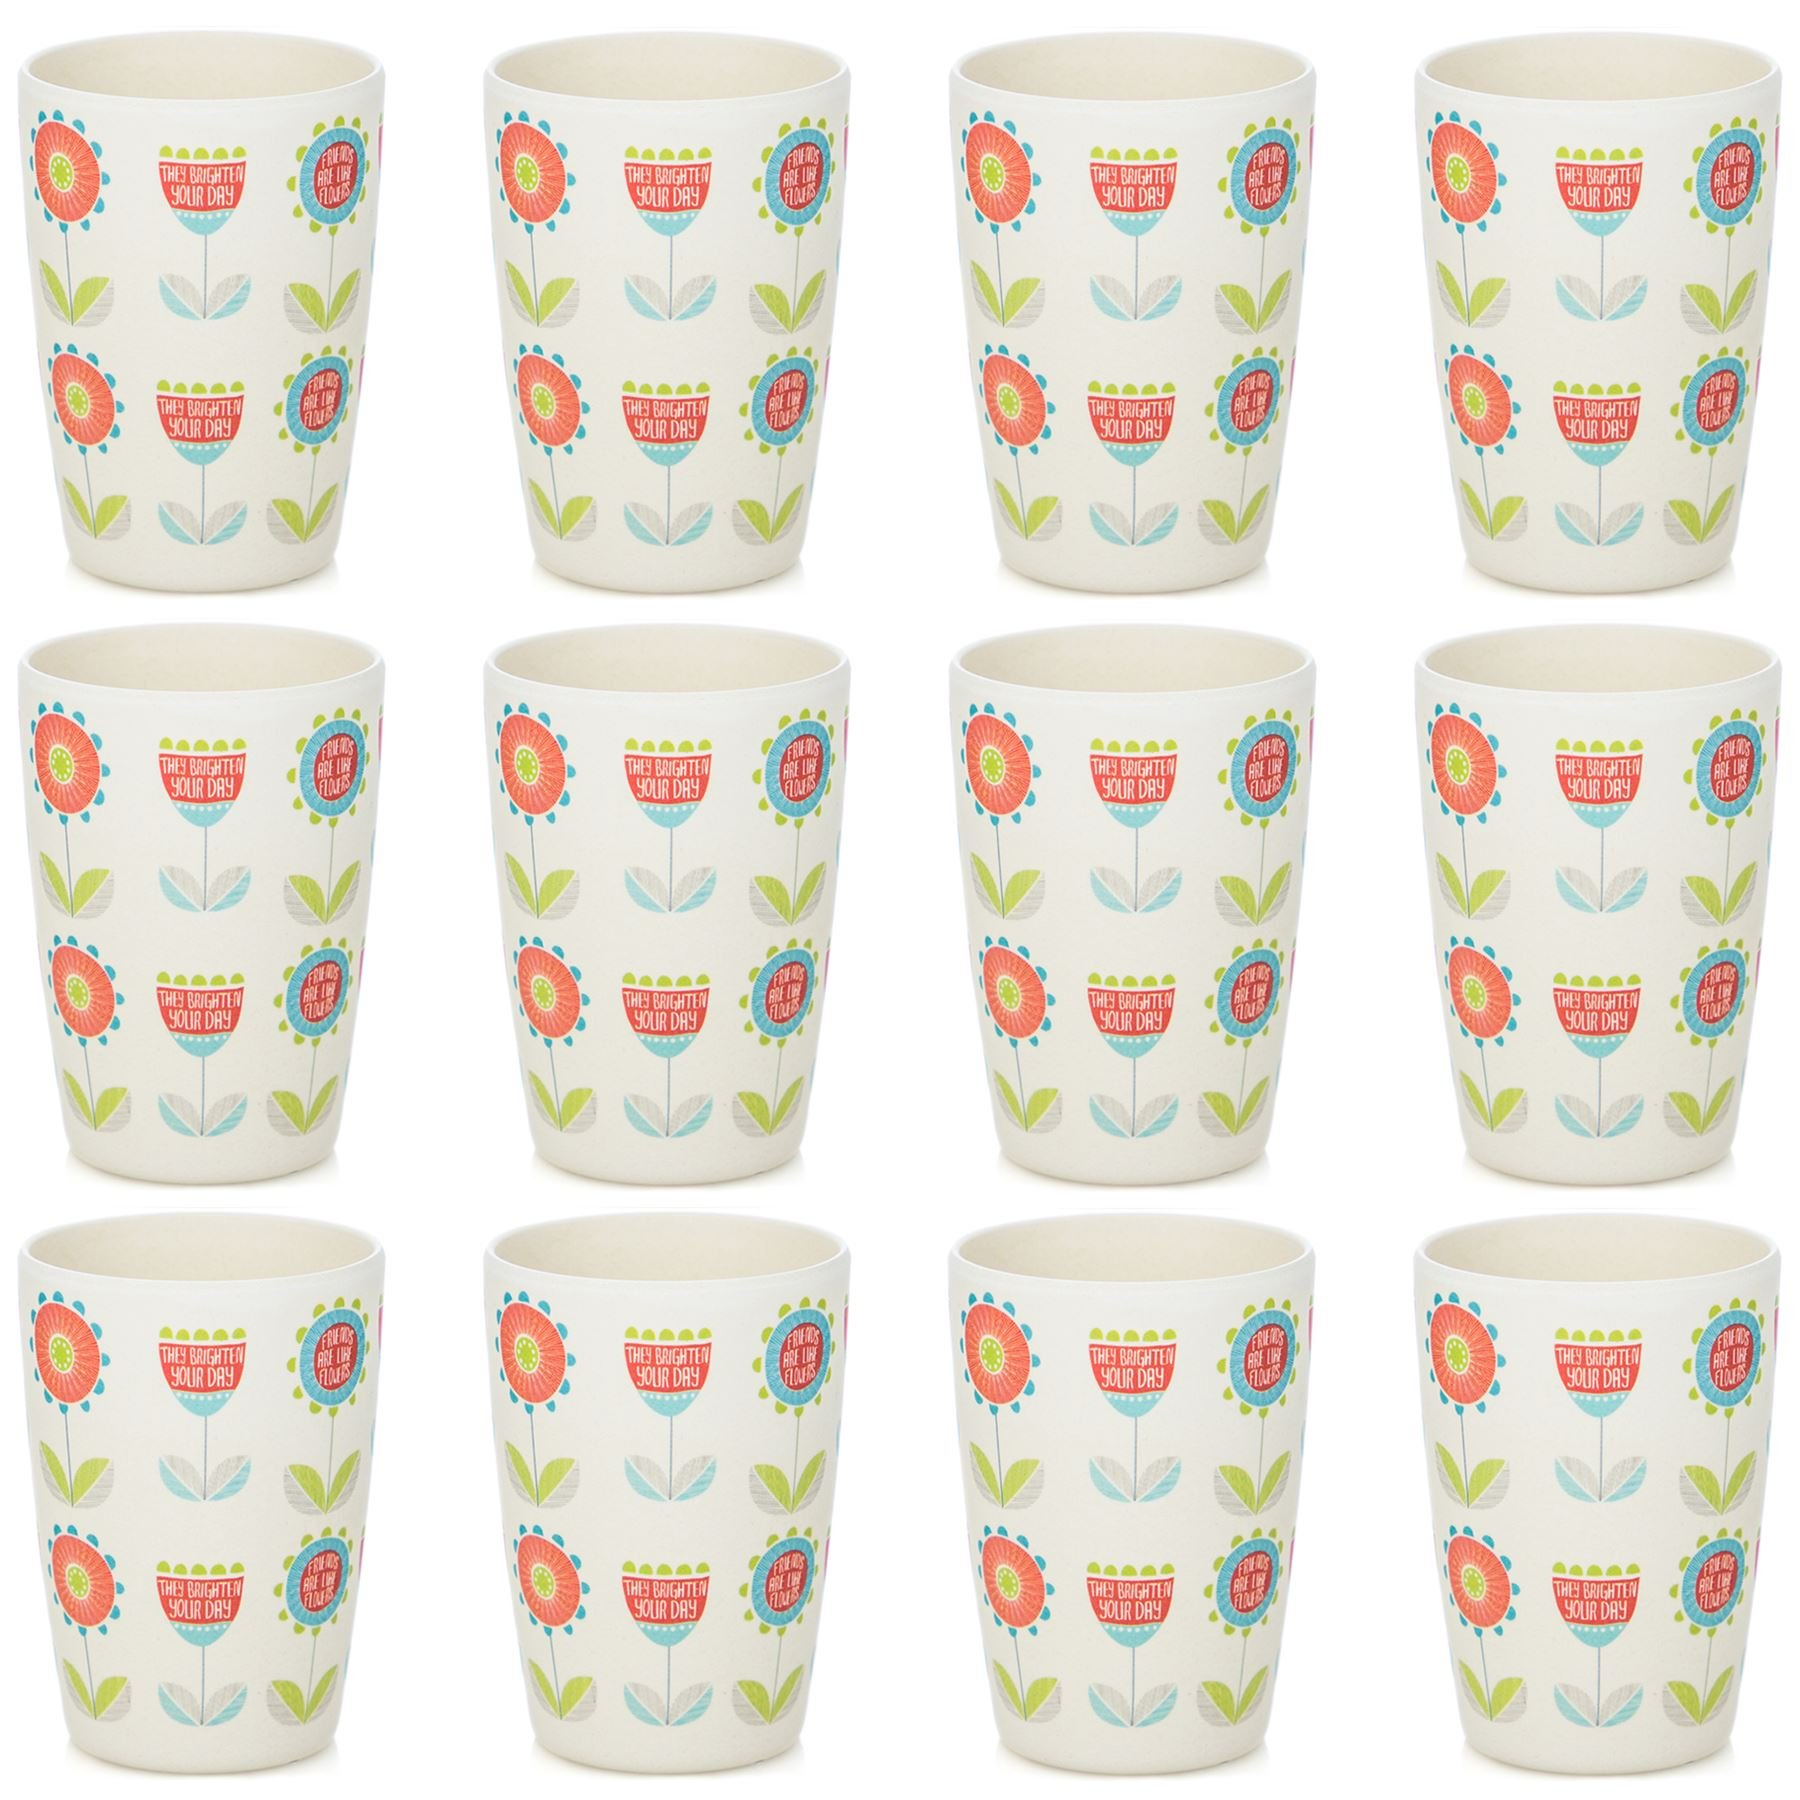 Tiny Dining Children's Bamboo Fibre Juice Cup - Flower - Pack of 12 by Tiny Dining